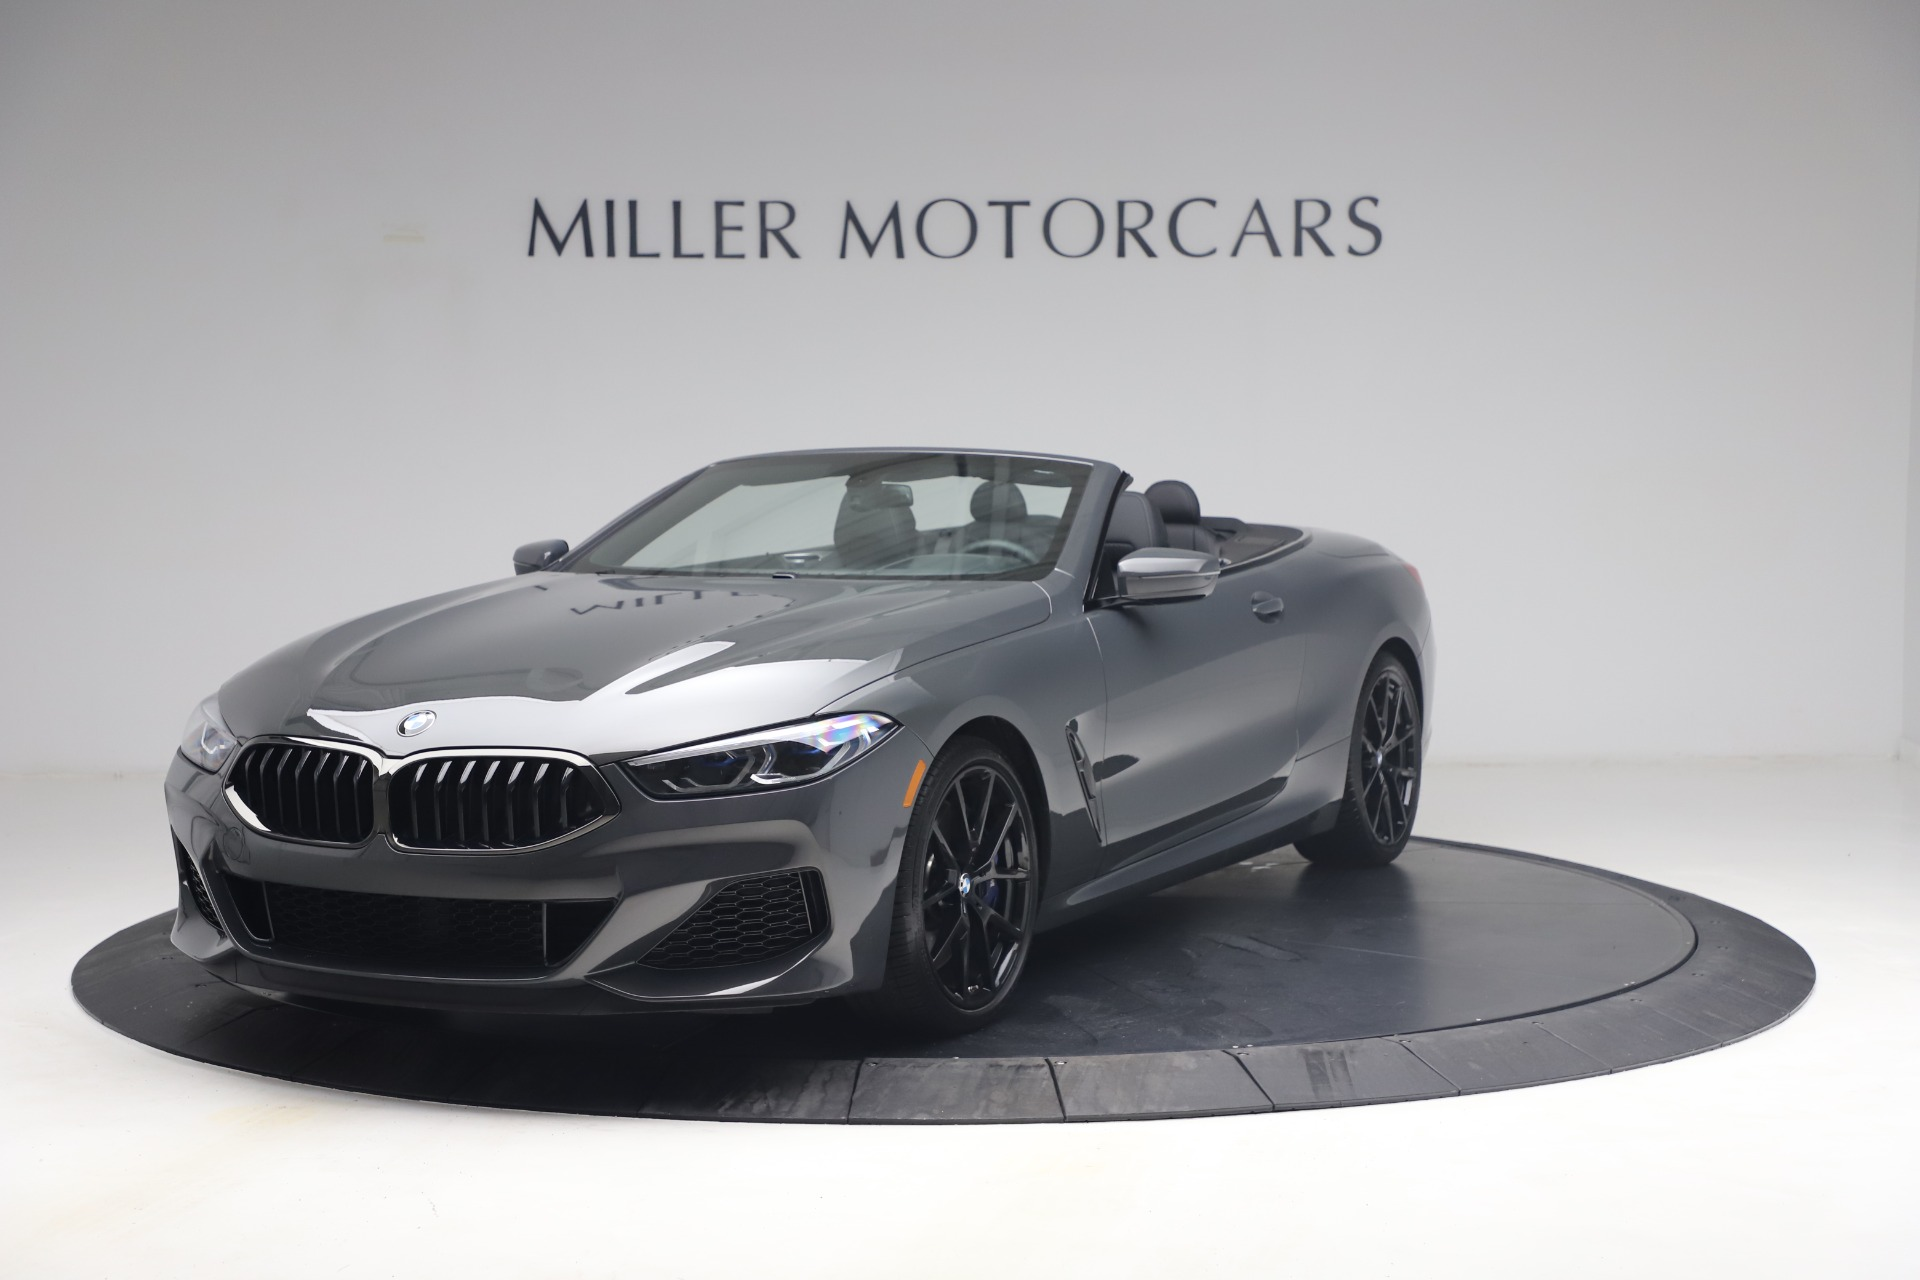 Used 2019 BMW 8 Series M850i xDrive for sale Sold at Bugatti of Greenwich in Greenwich CT 06830 1